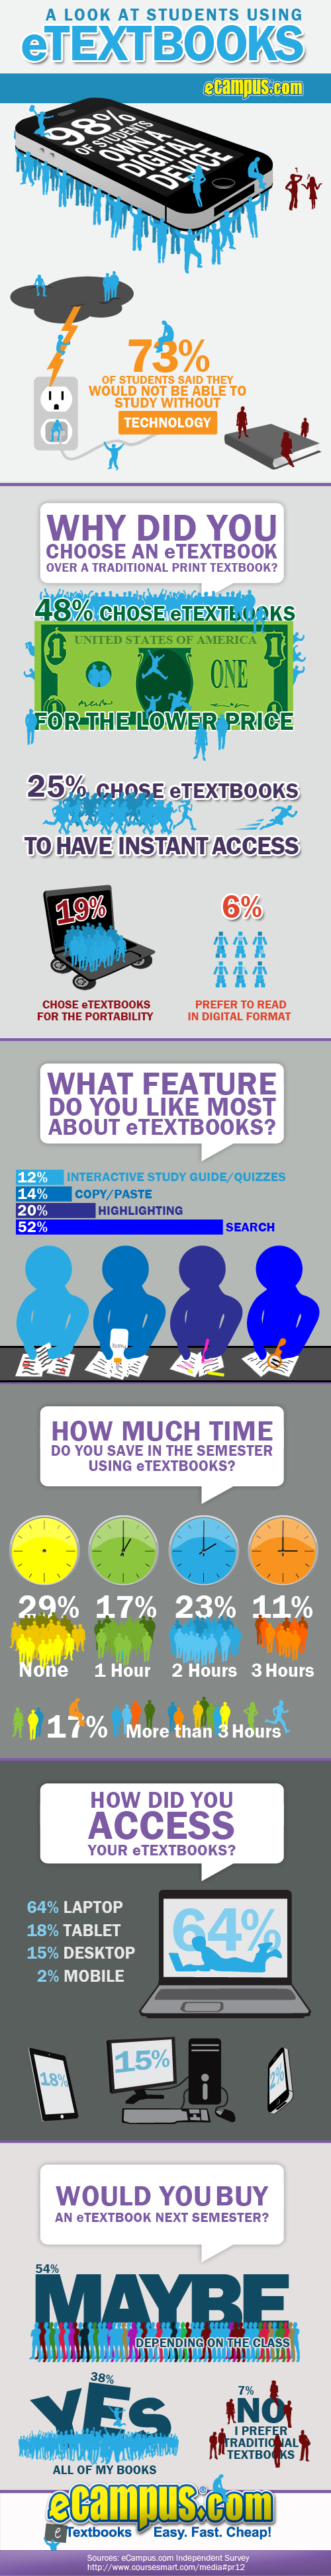 A Look at Students Using eTextbooks (Infographic)